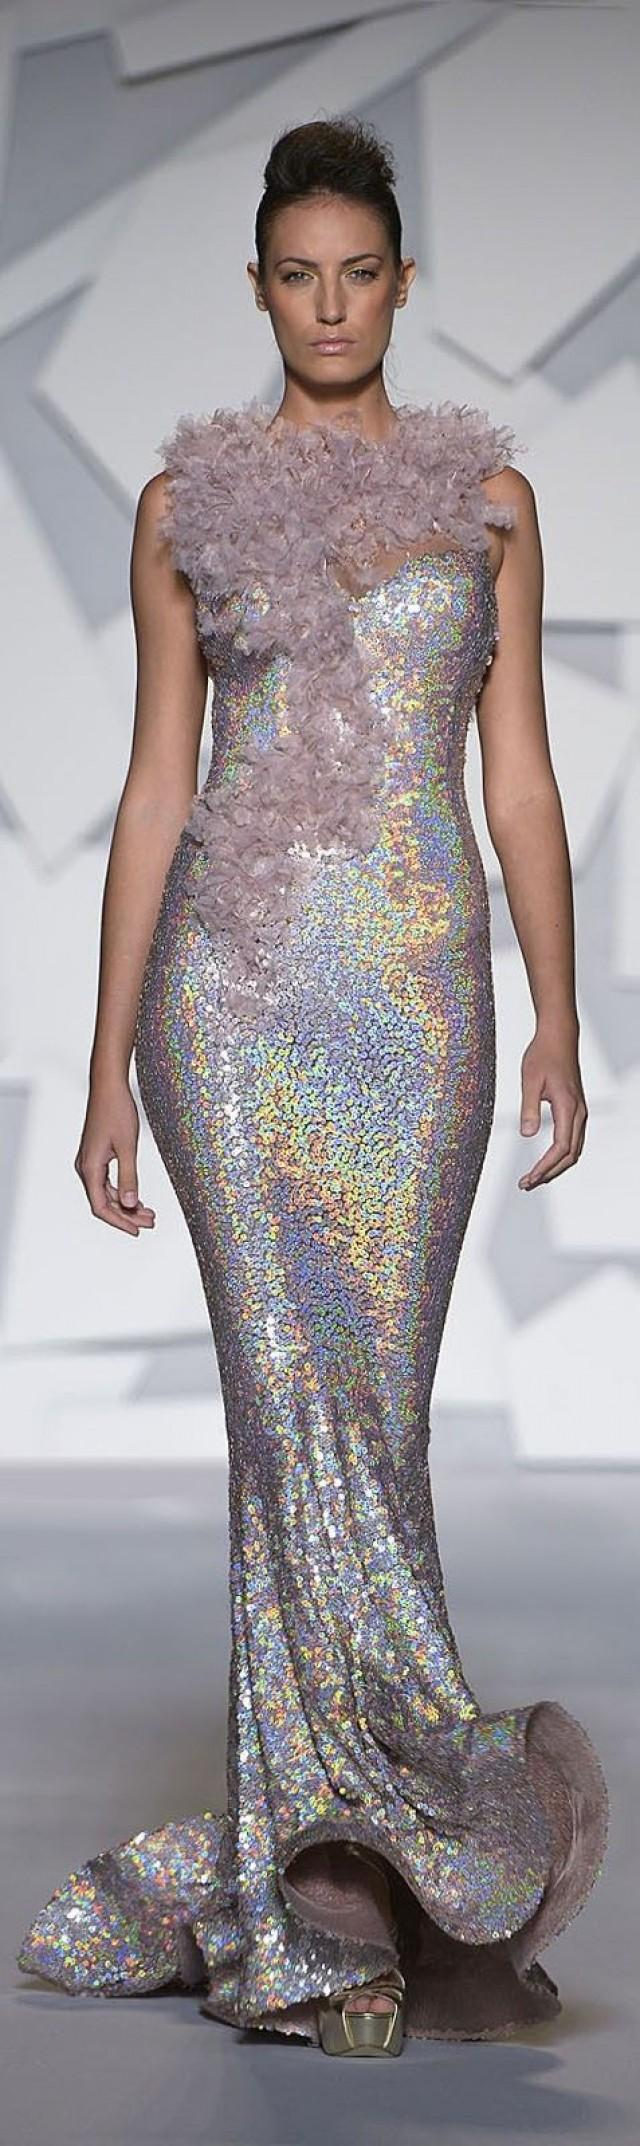 Glitzernde Kleider .... Greys | Designer Dresses and Accessories ...